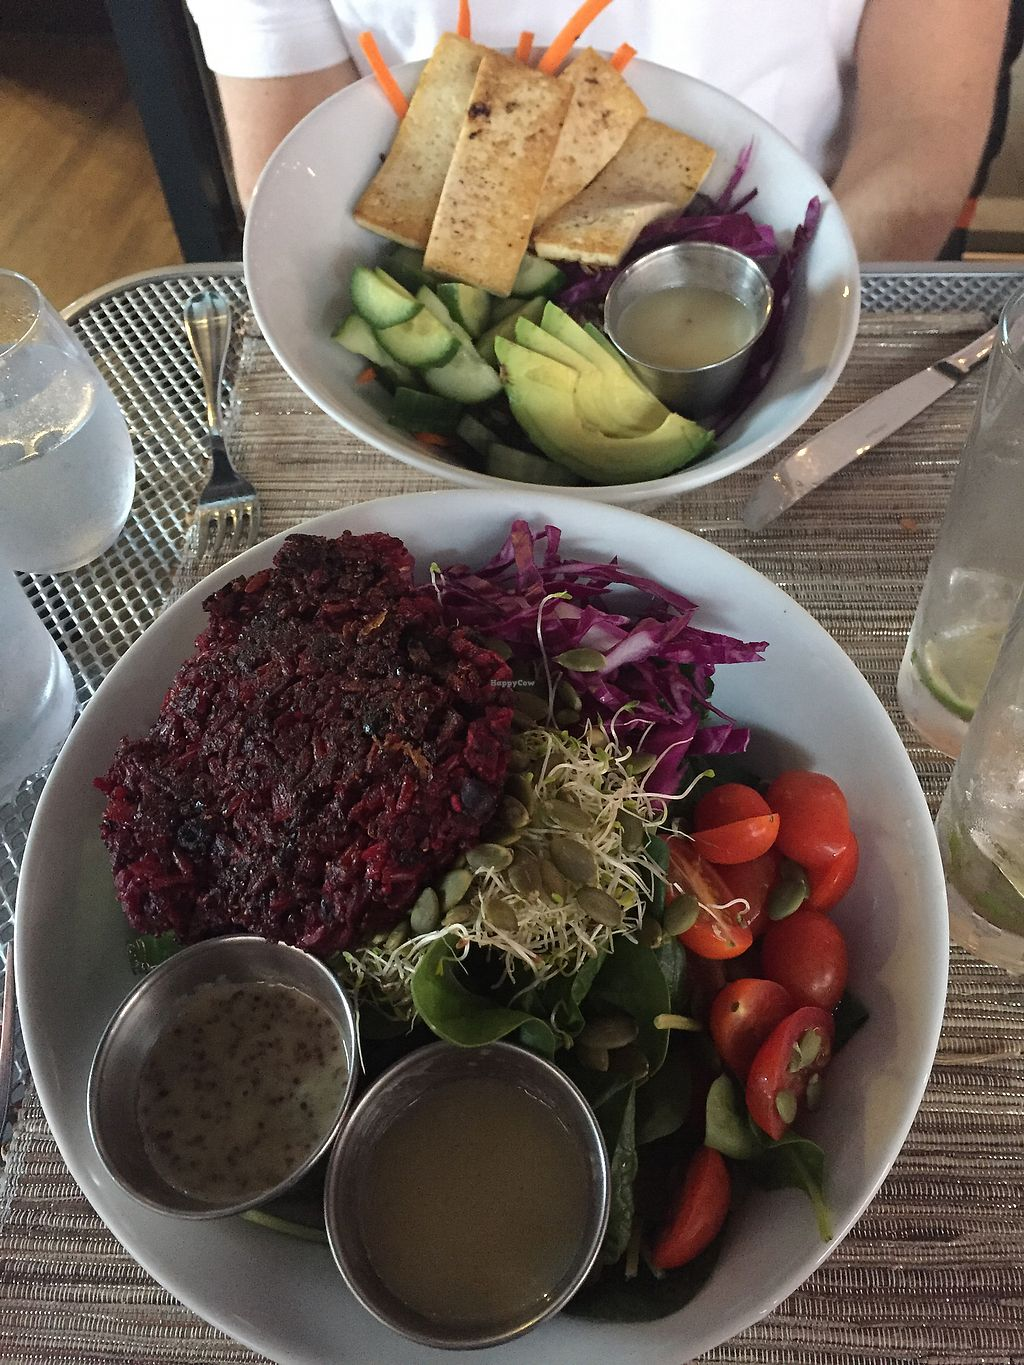 "Photo of Namastay Kitchen  by <a href=""/members/profile/EmilyCasey10"">EmilyCasey10</a> <br/>Salad bowl with beat burger, quinoa bowl with tofu  <br/> February 11, 2018  - <a href='/contact/abuse/image/83402/357851'>Report</a>"